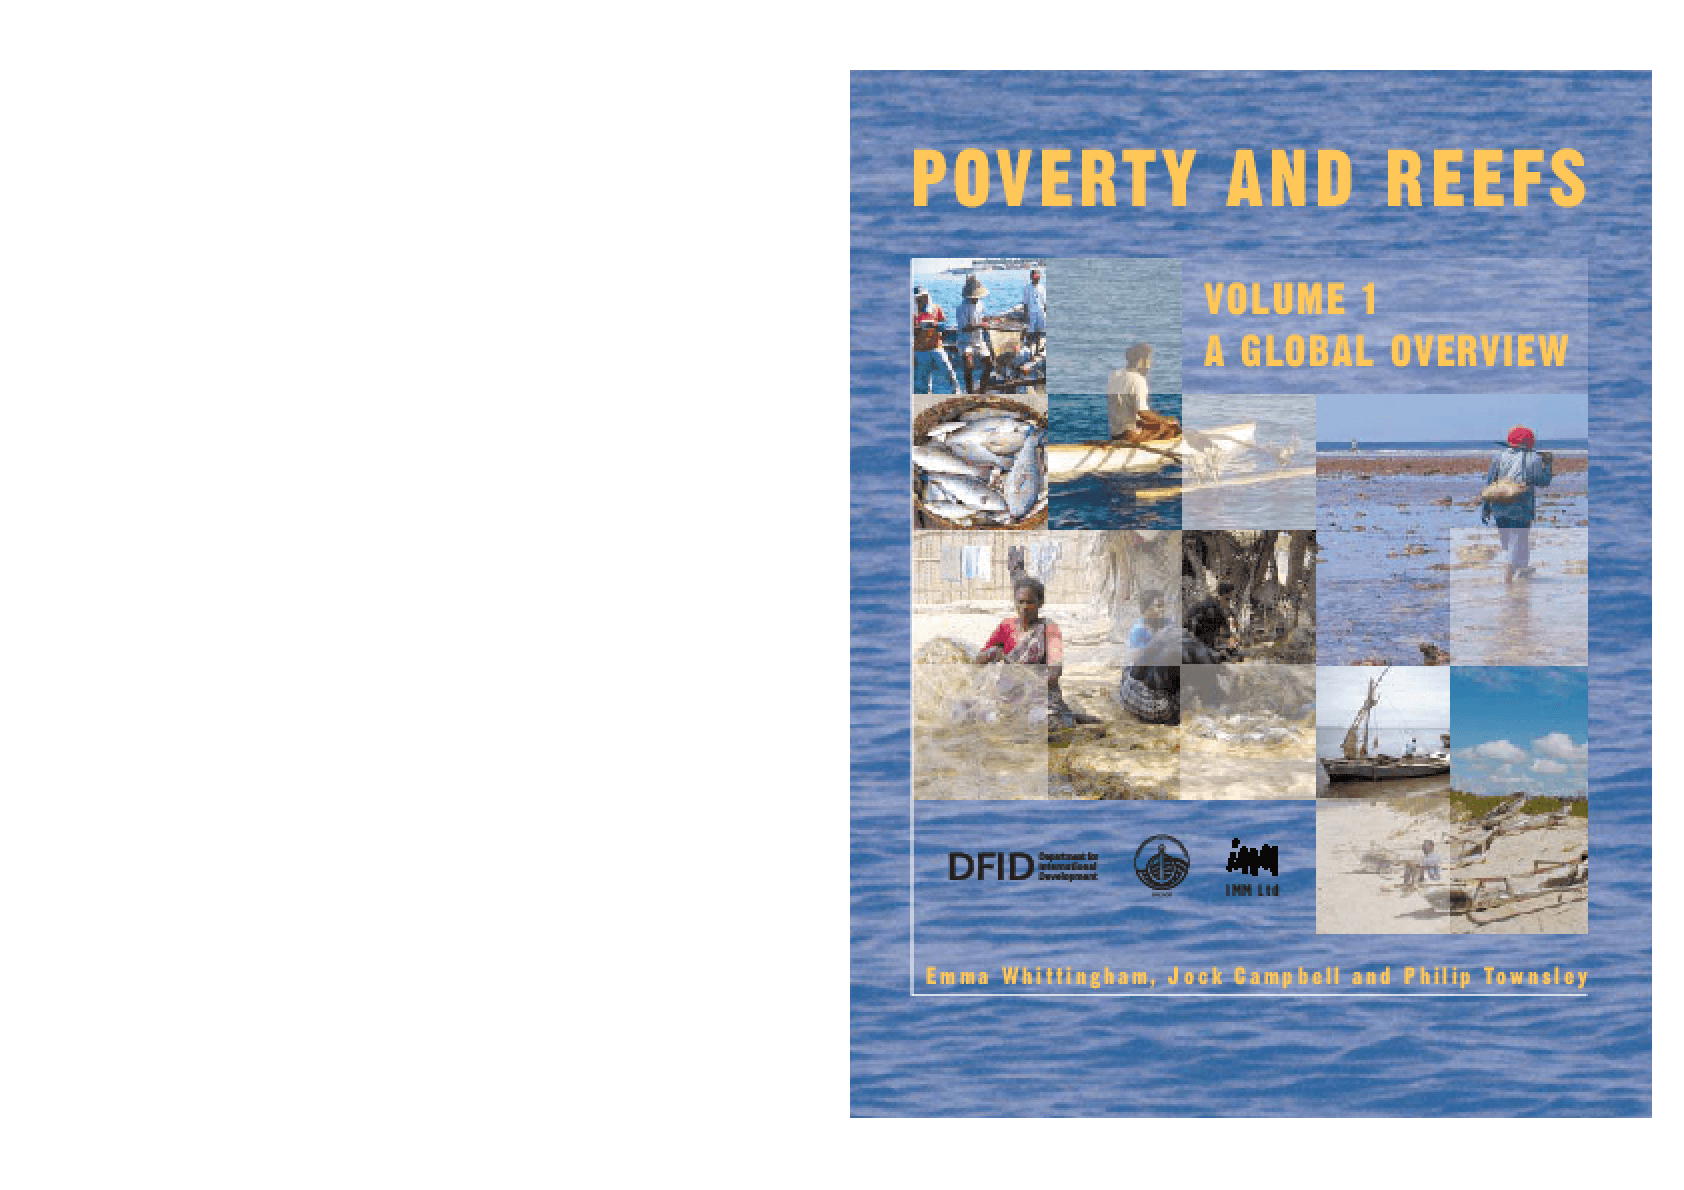 Poverty and Reefs: Volume 1 A Global Overview